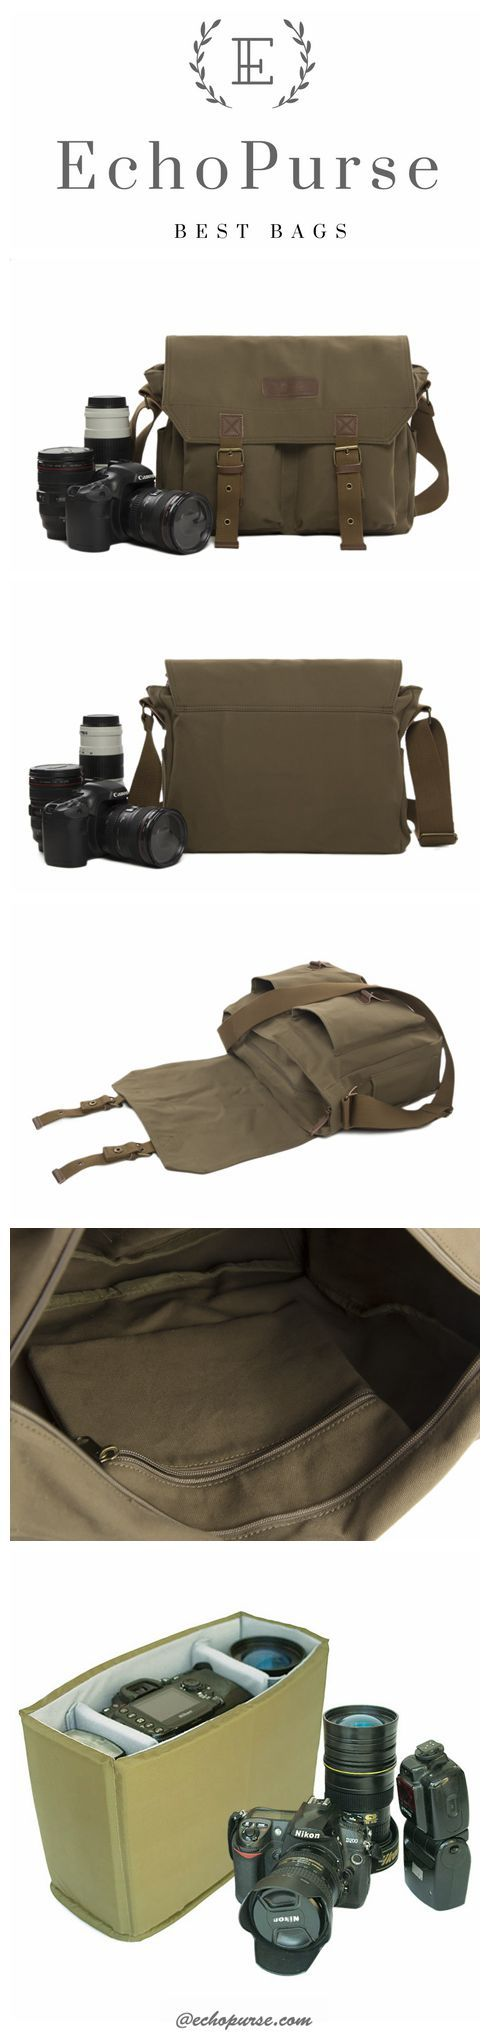 Canvas DSLR Camera Bag, Professional SLR Camera Purse Fit Canon Nikon F1003 #camerapurse